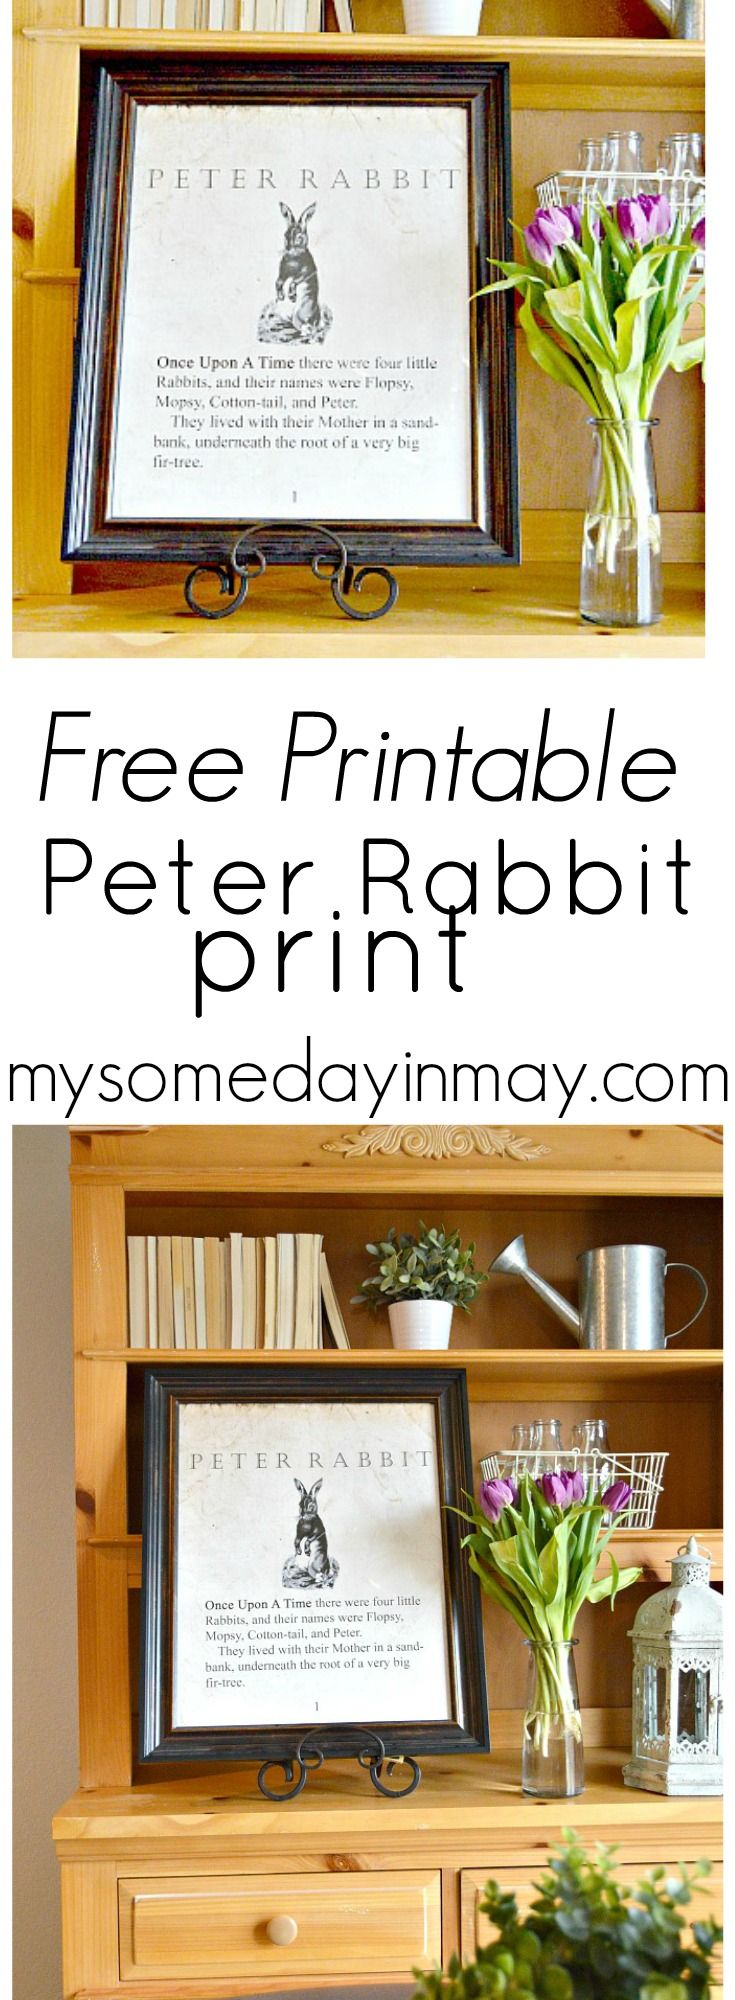 Free spring or Easter print!  a blow up print of a Peter Rabbit book page                                                                                                                                                                                 More